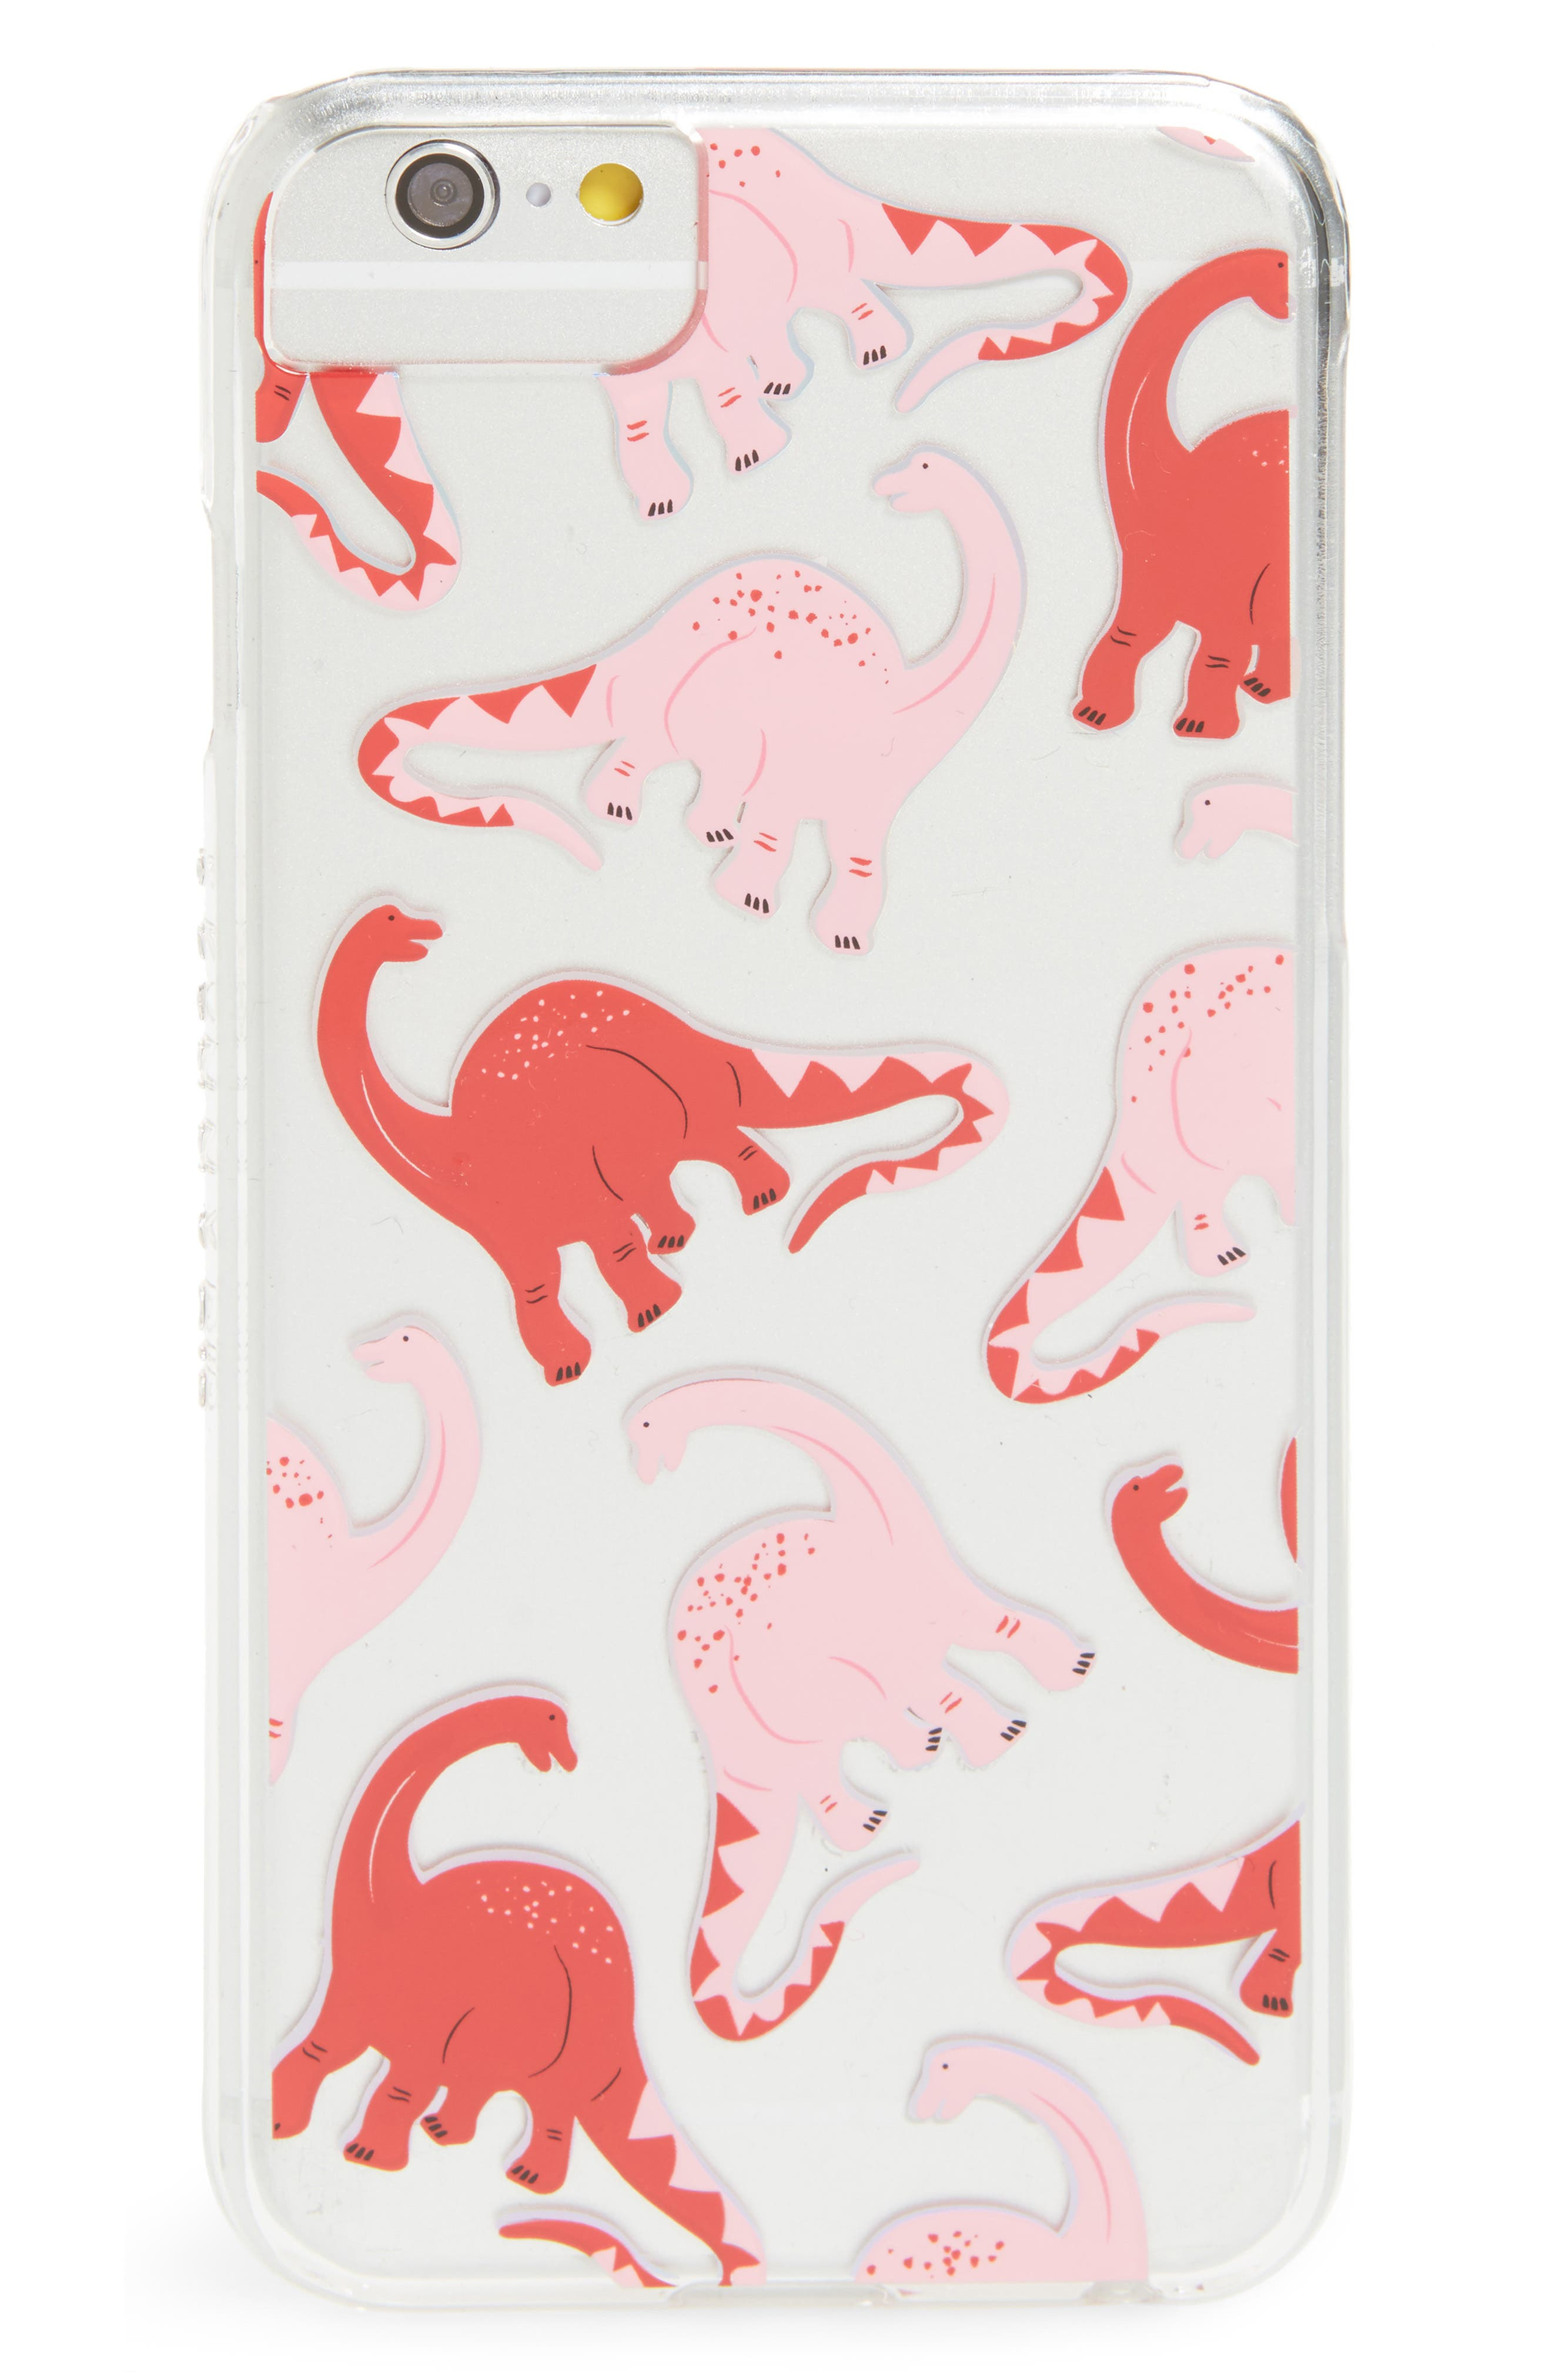 Skinny Dip Pink Dino iPhone 6/6s/7/8 or 6/6s/7/8 Plus Case,                             Main thumbnail 1, color,                             650